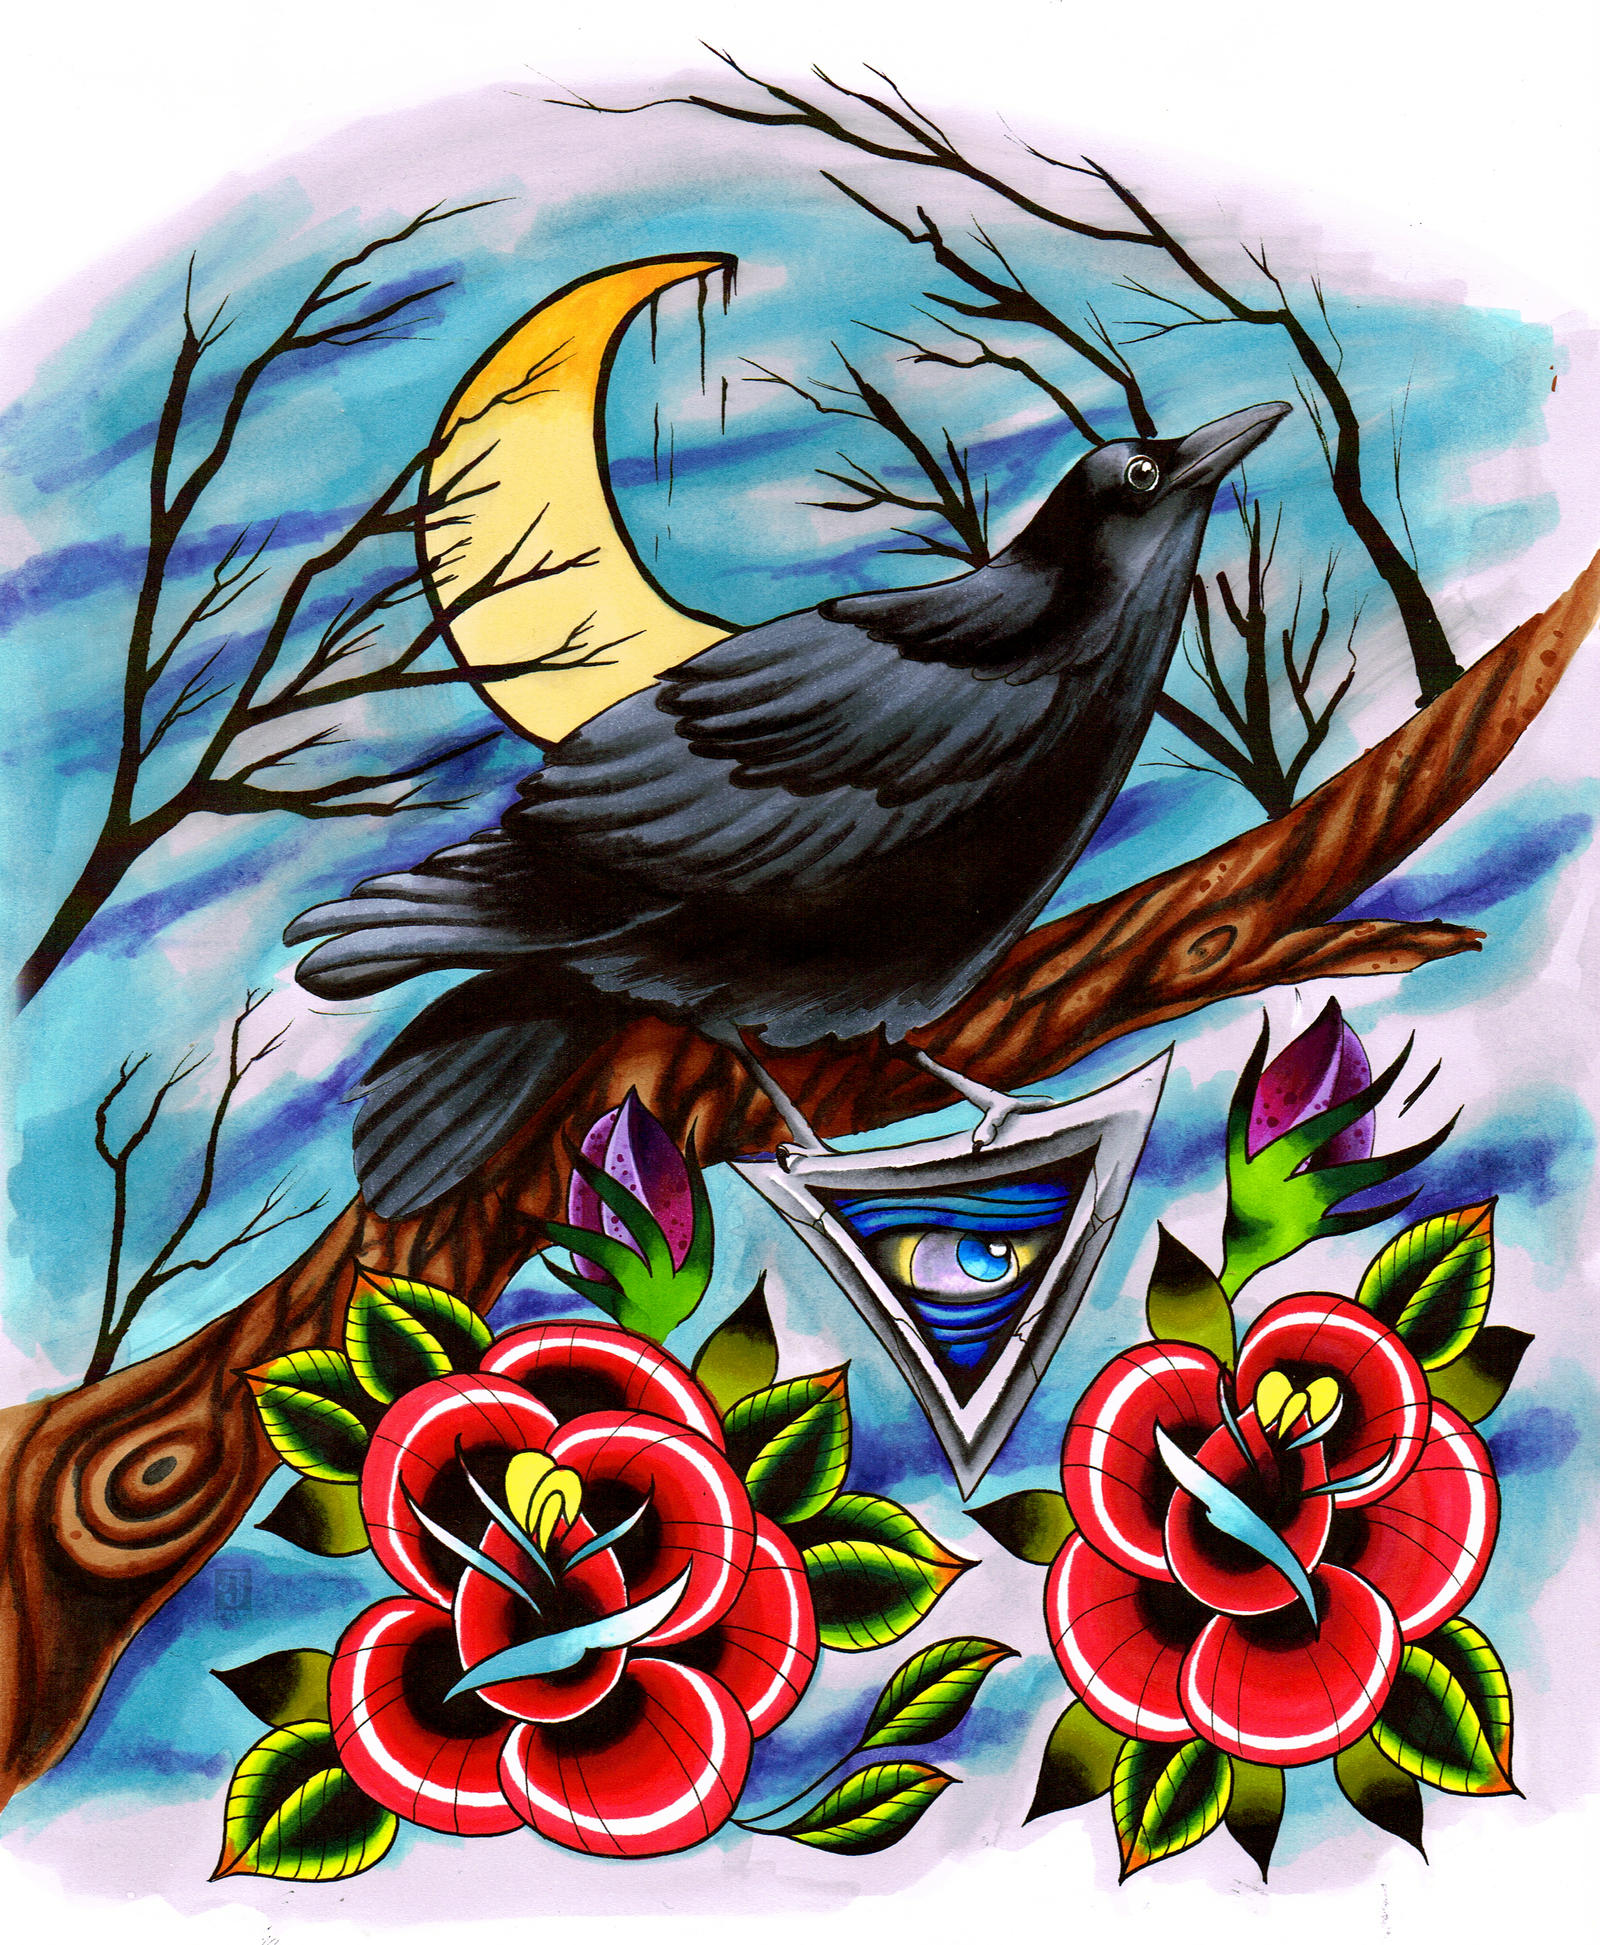 New school tattoo design - Raven Tattoo Design By Jerrrroen Raven Tattoo Design By Jerrrroen